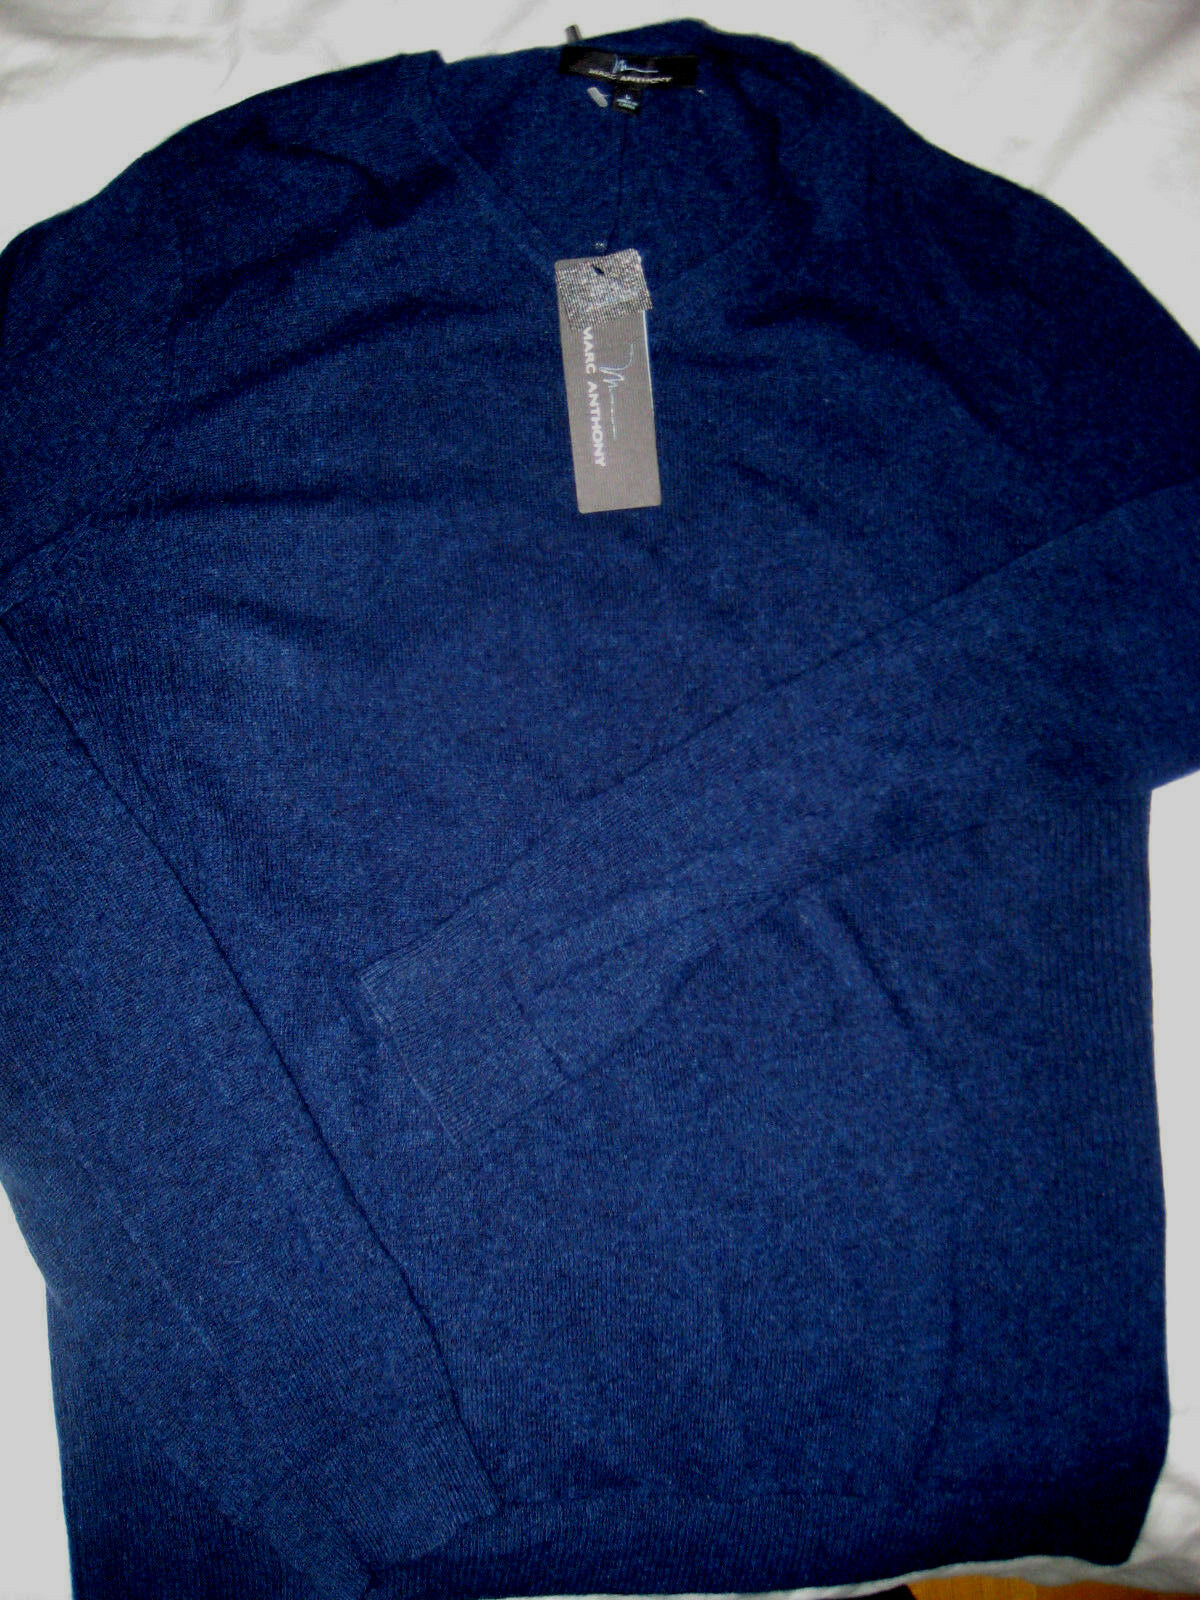 MARC ANTHONY LUXURY SOFT CASHMERE schweißER-RIBBED SIDES-MIDNIGHT Blau- 160-NWT- L